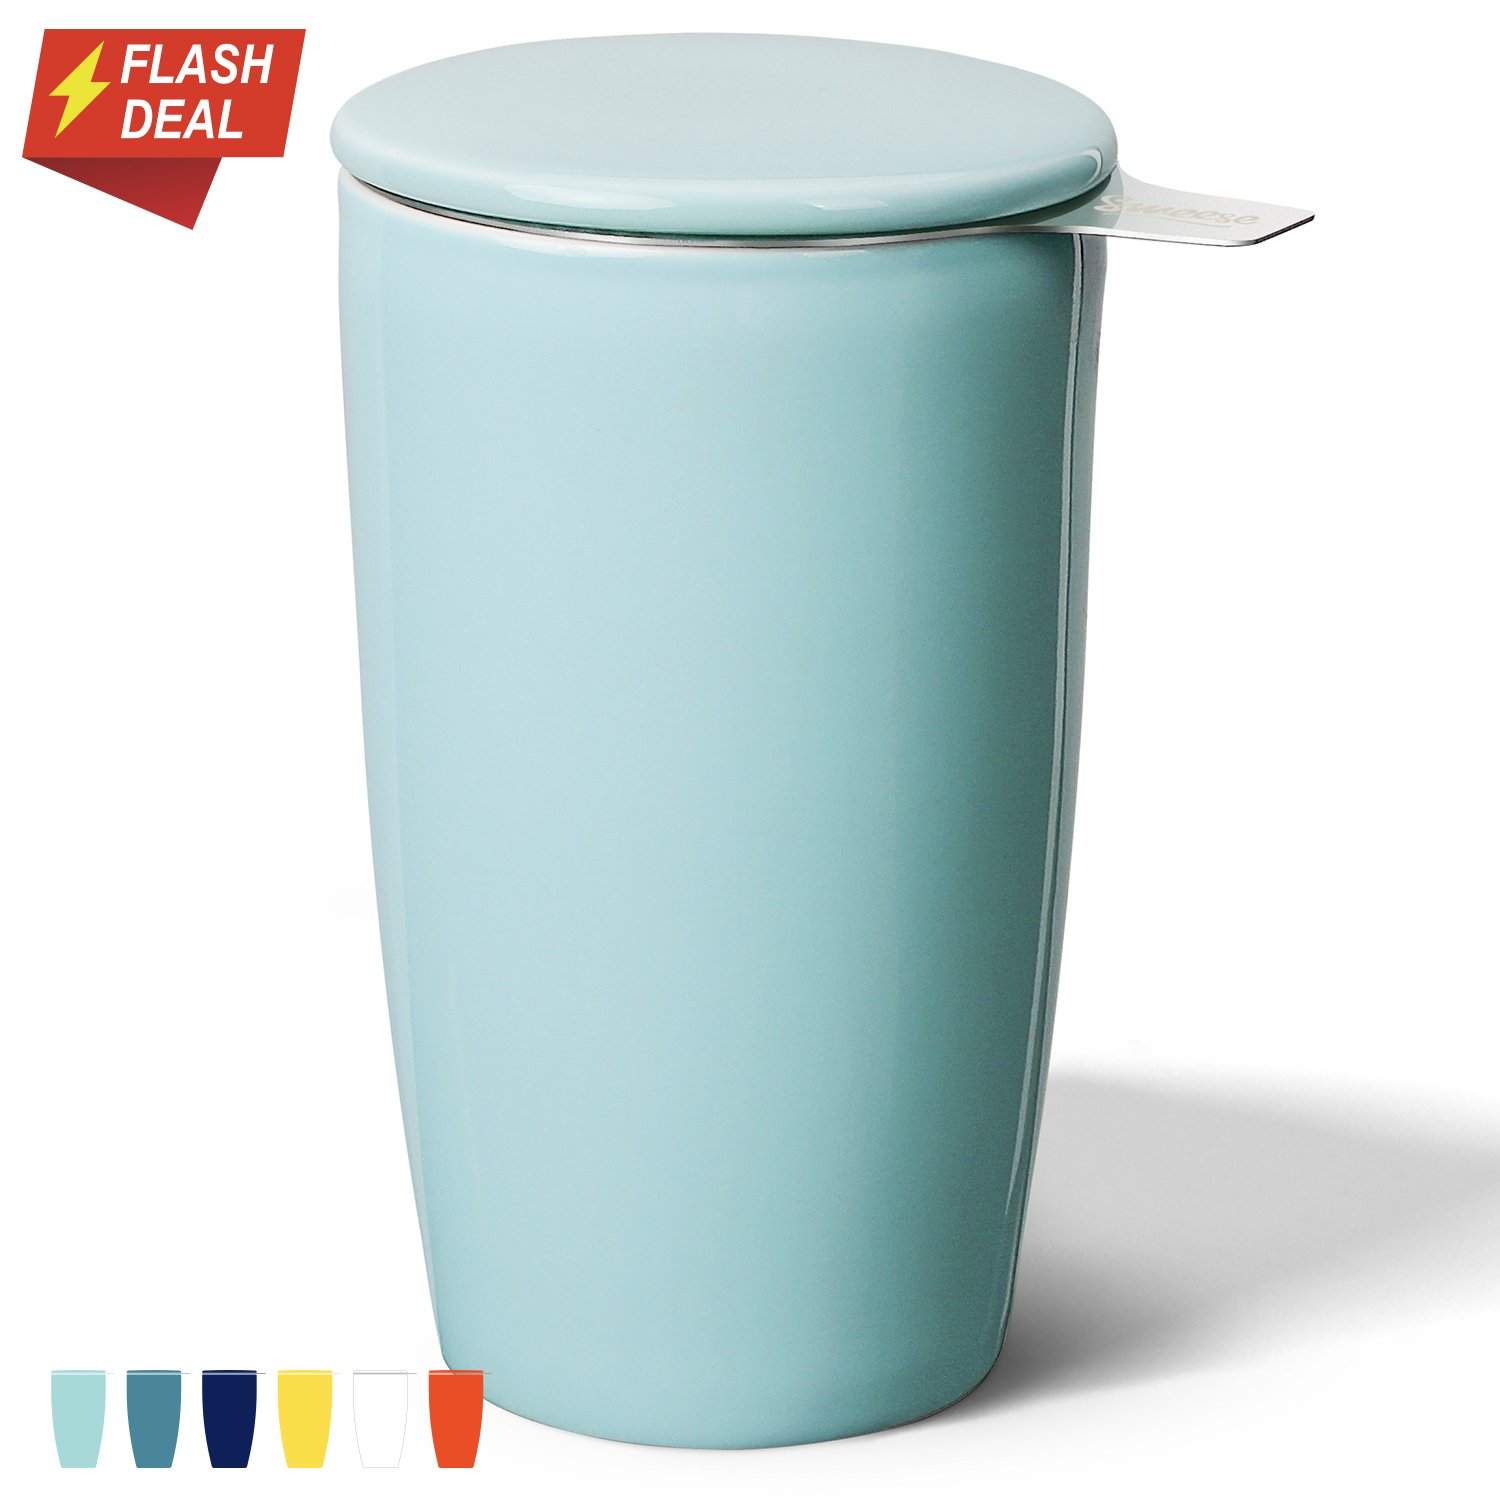 Sweese 2502 Porcelain Tea Infuser Mug - Double-Walled Insulated Cup with Deep Stainless Steel Infuser and Lid - 15oz, Turquoise by Sweese (Image #1)